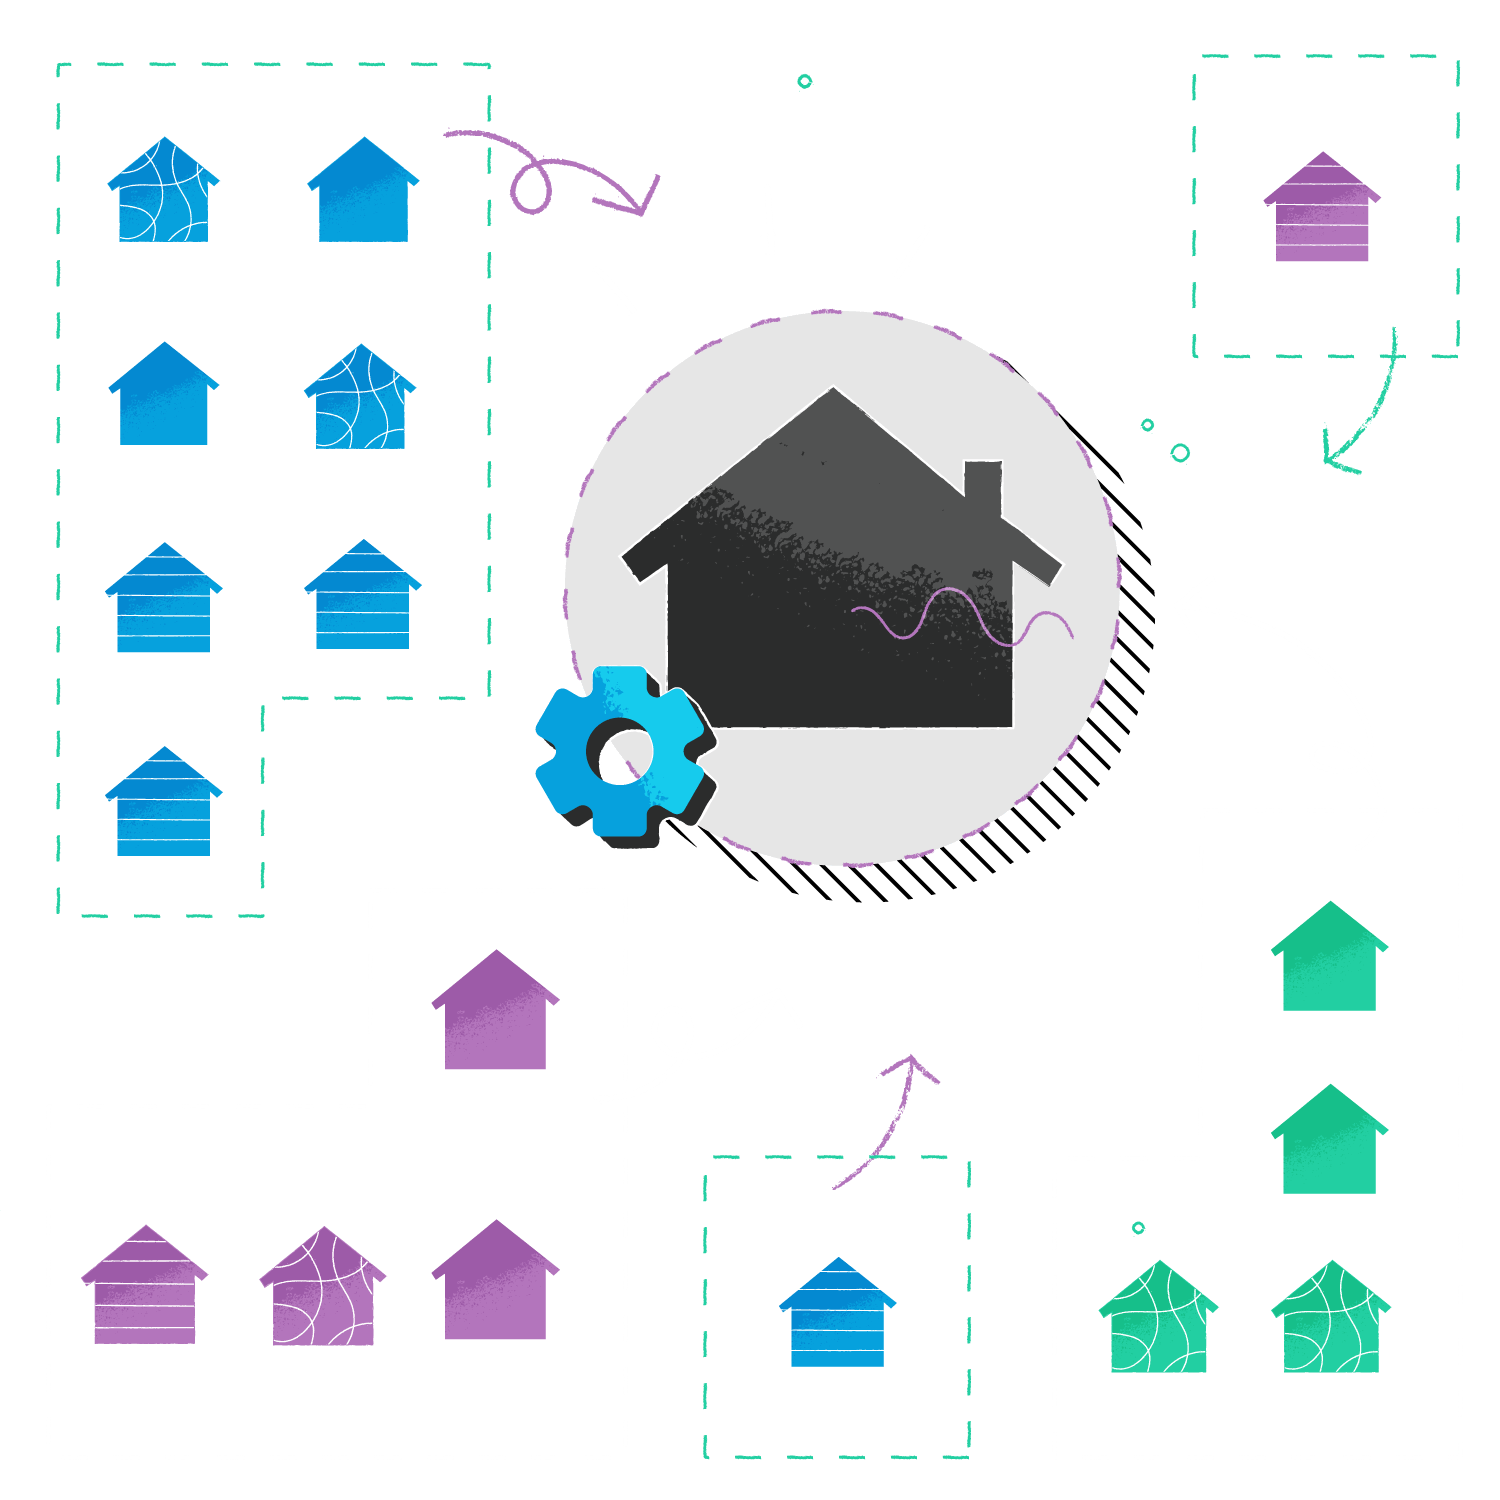 Aggregating offers from a variety of property providers and keeping them in sync within a single system